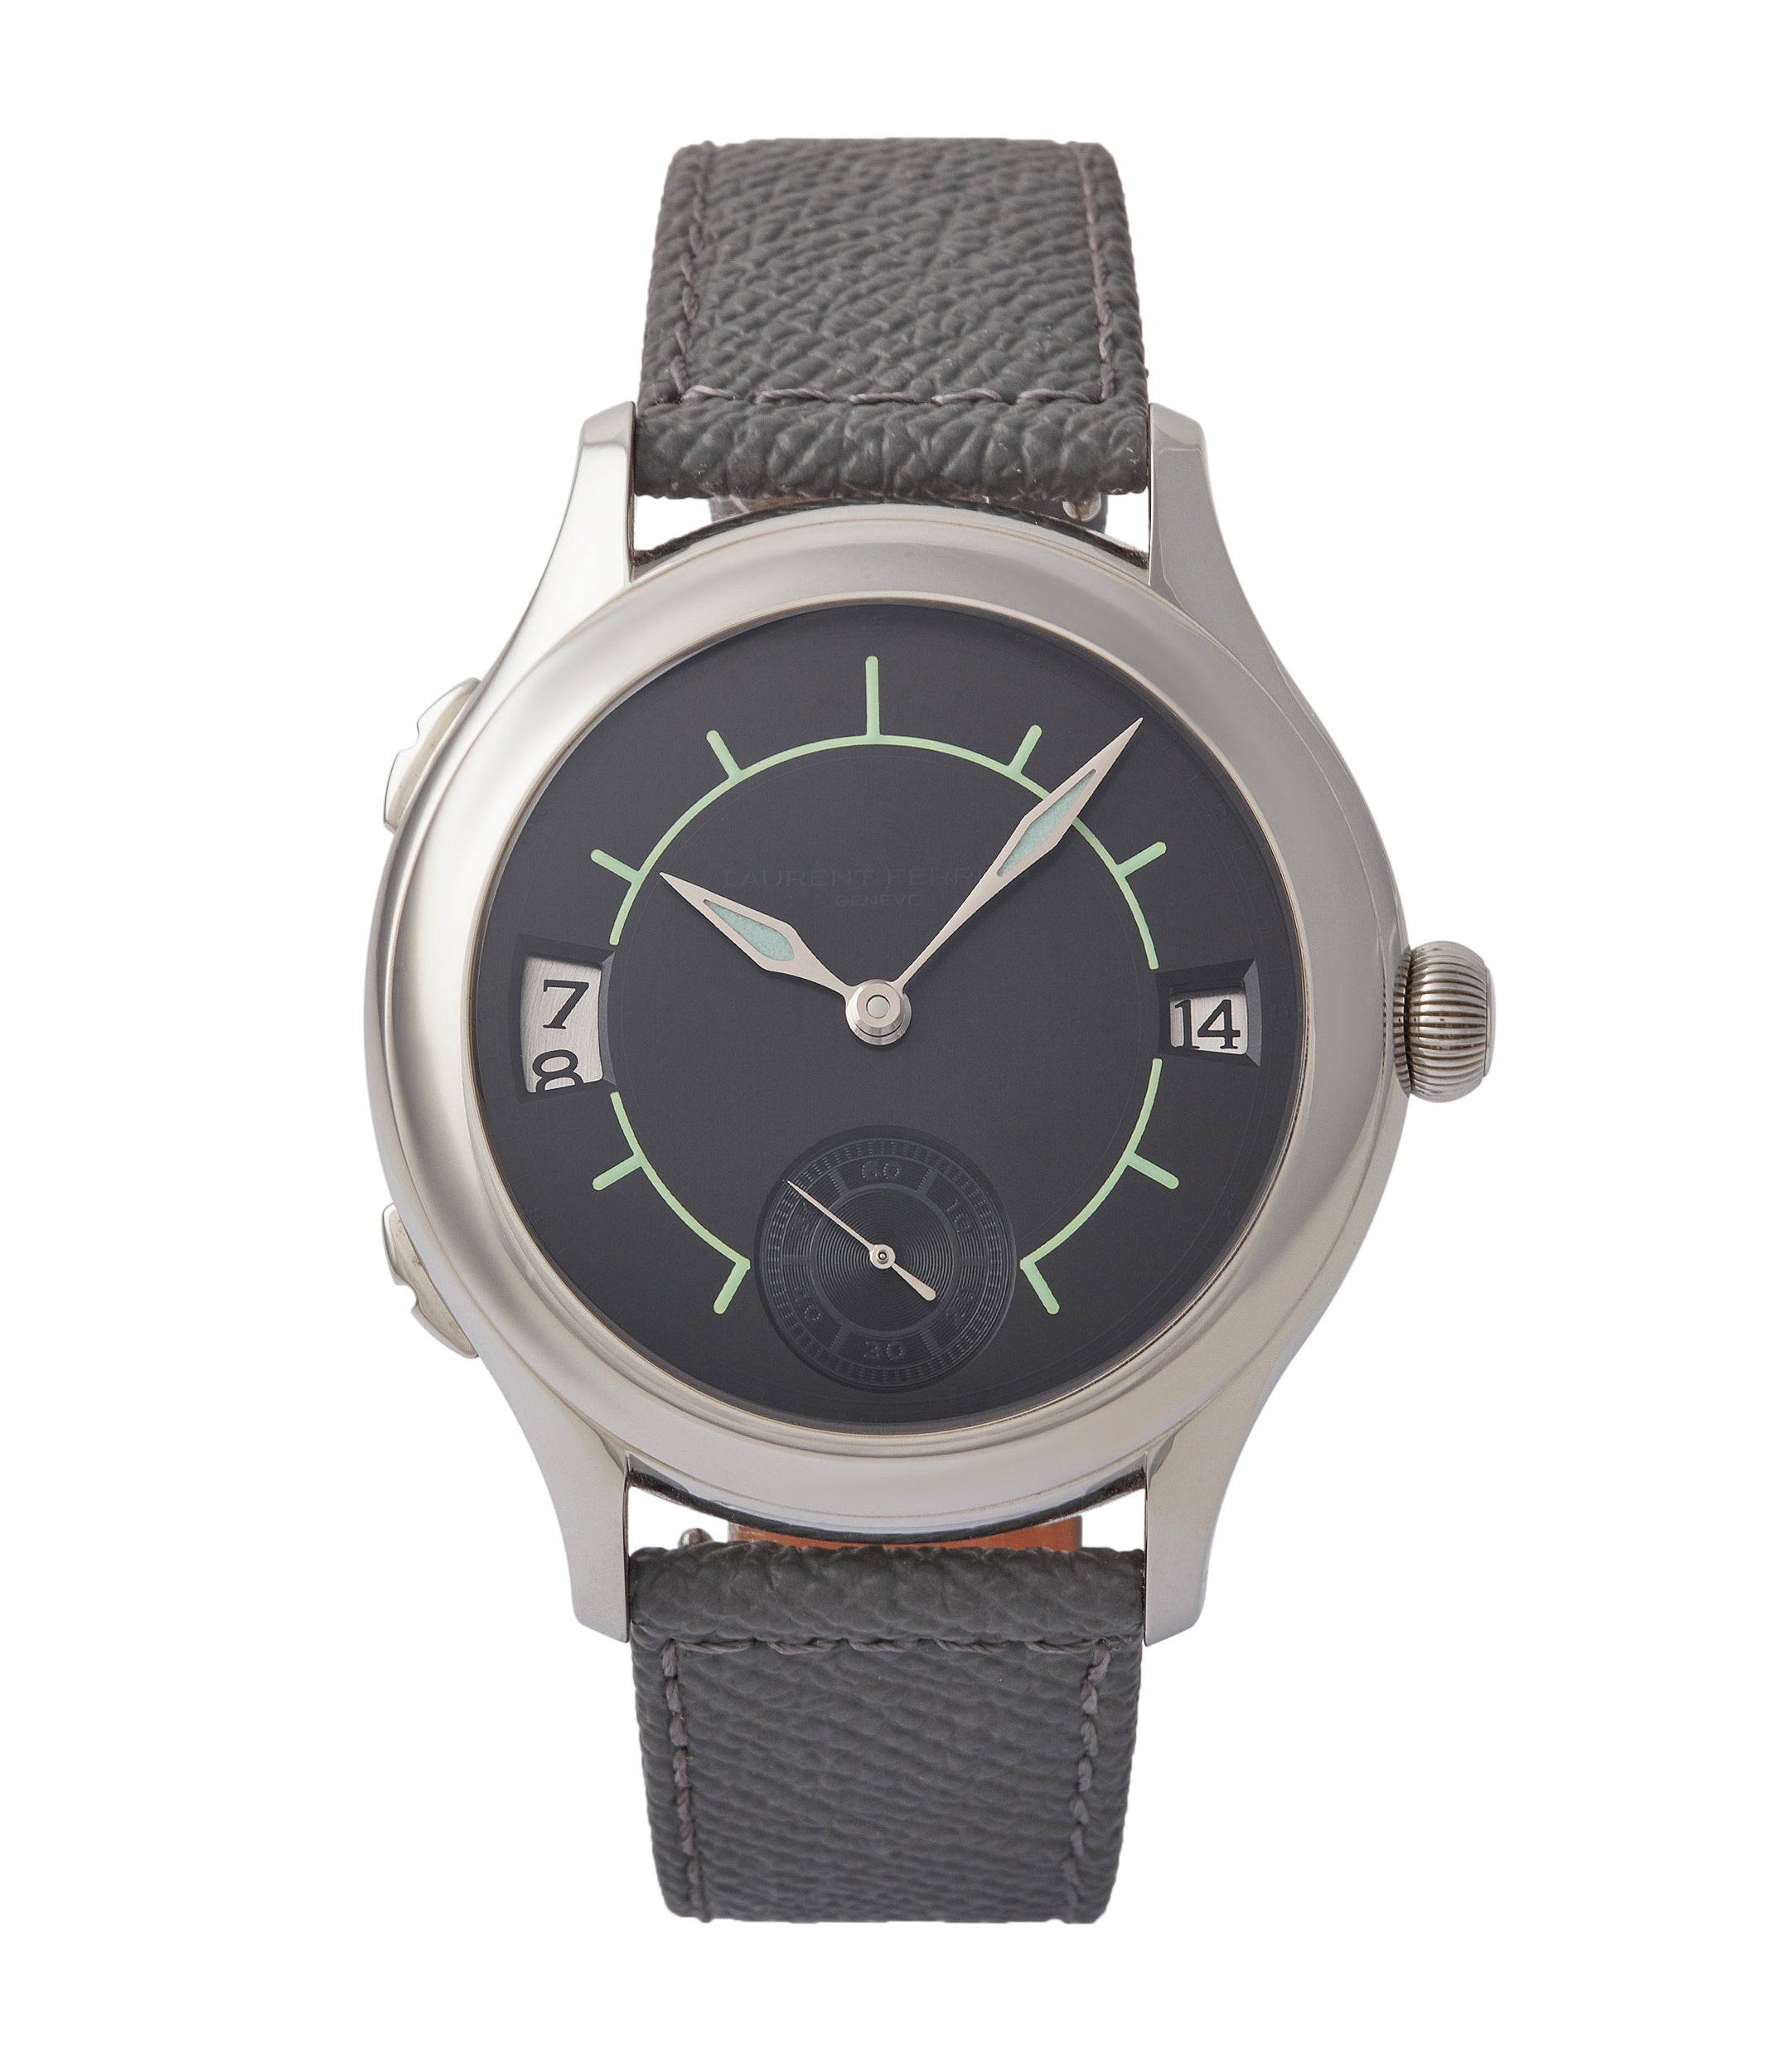 Galet Traveller Boréal with Luminous Sector Dial | LF 230.01 | steel